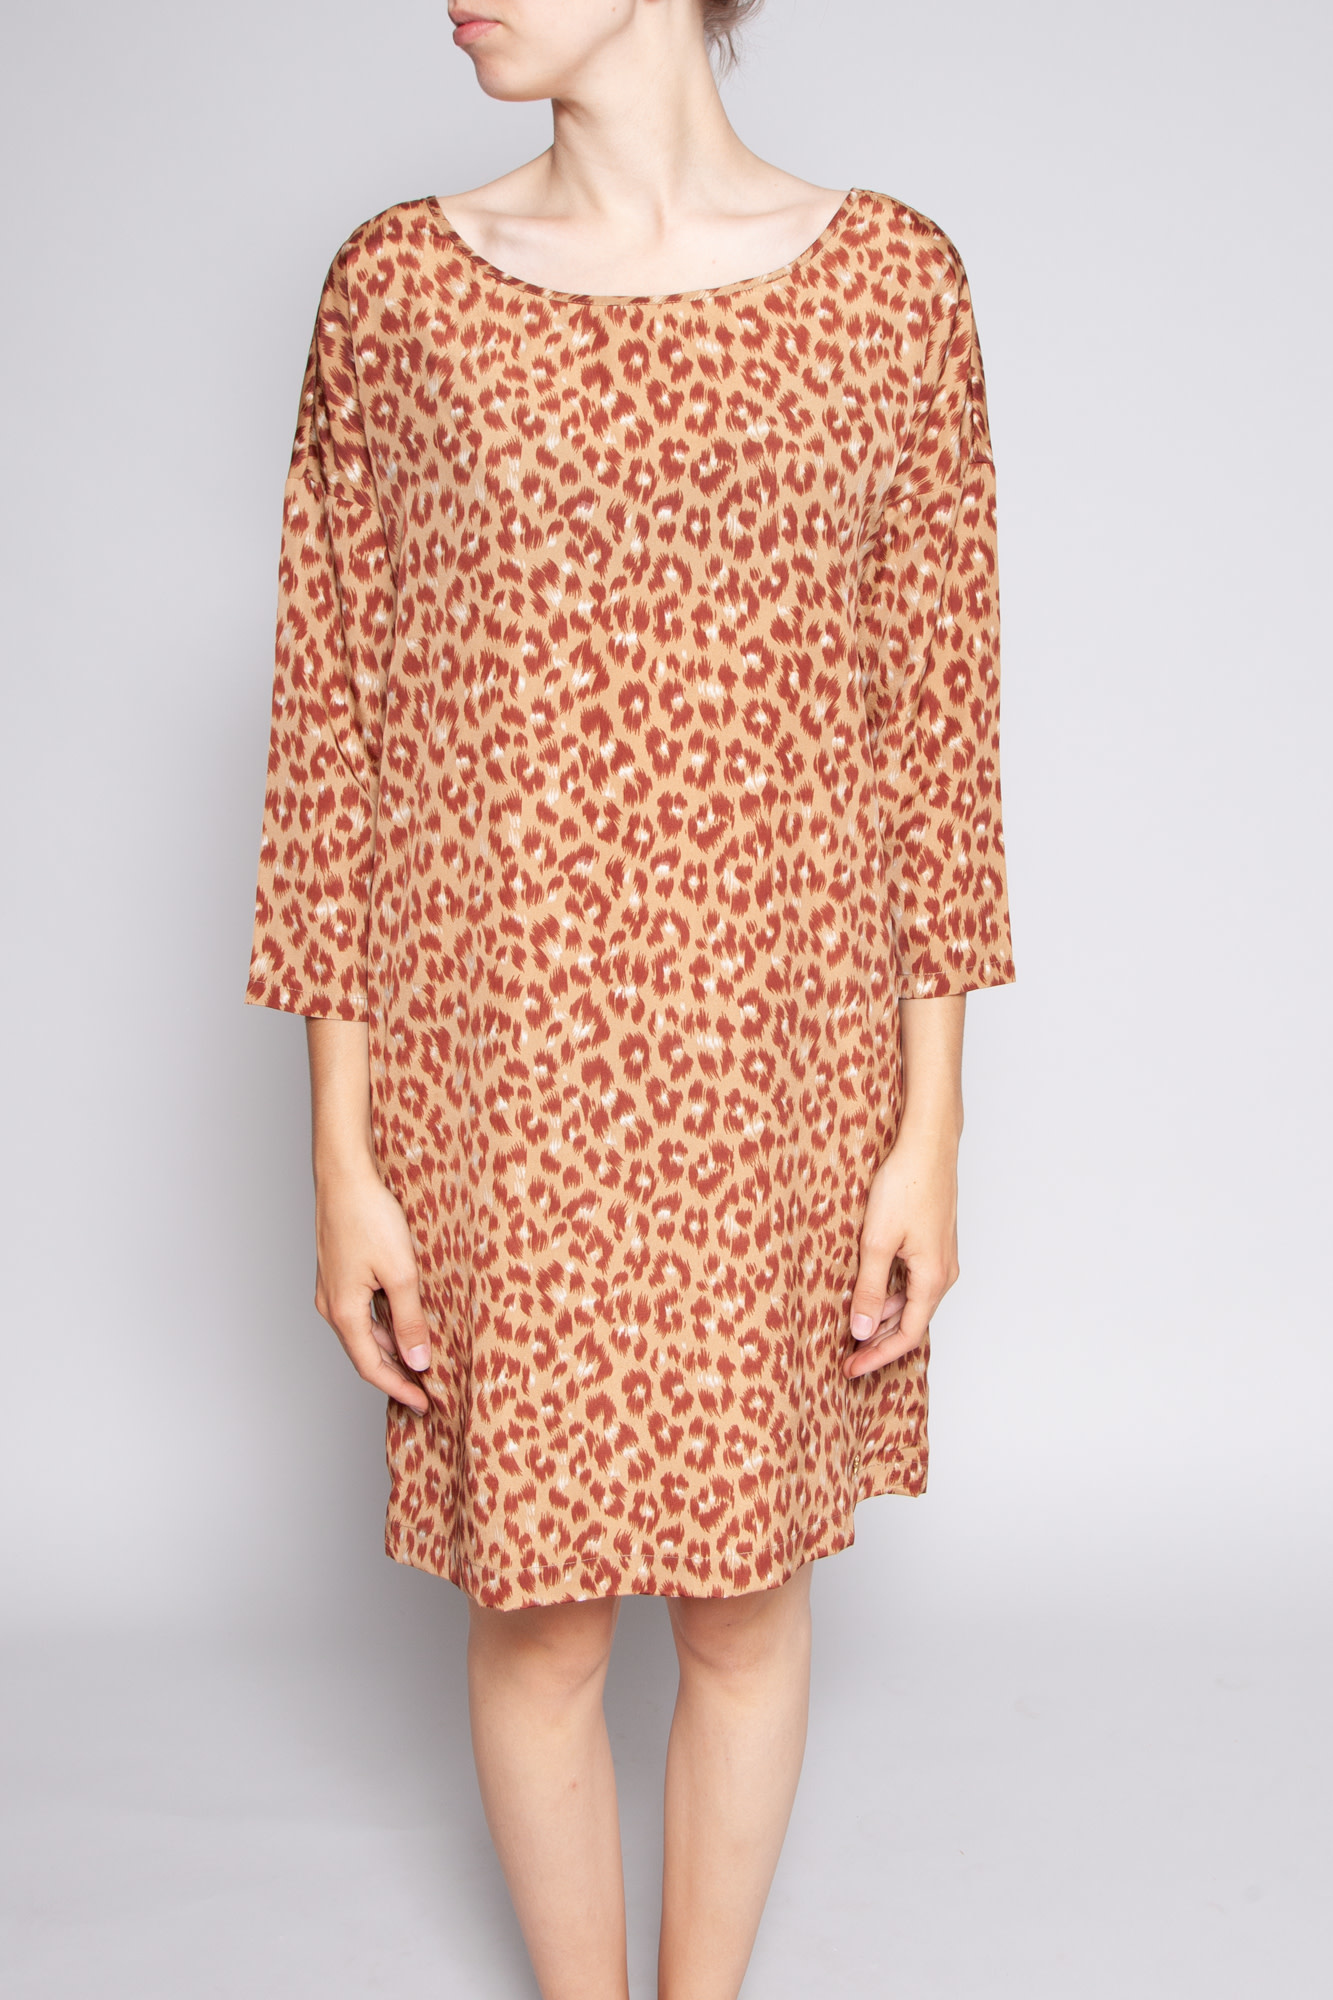 Des petits hauts BROWN LEOPARD PRINT DRESS